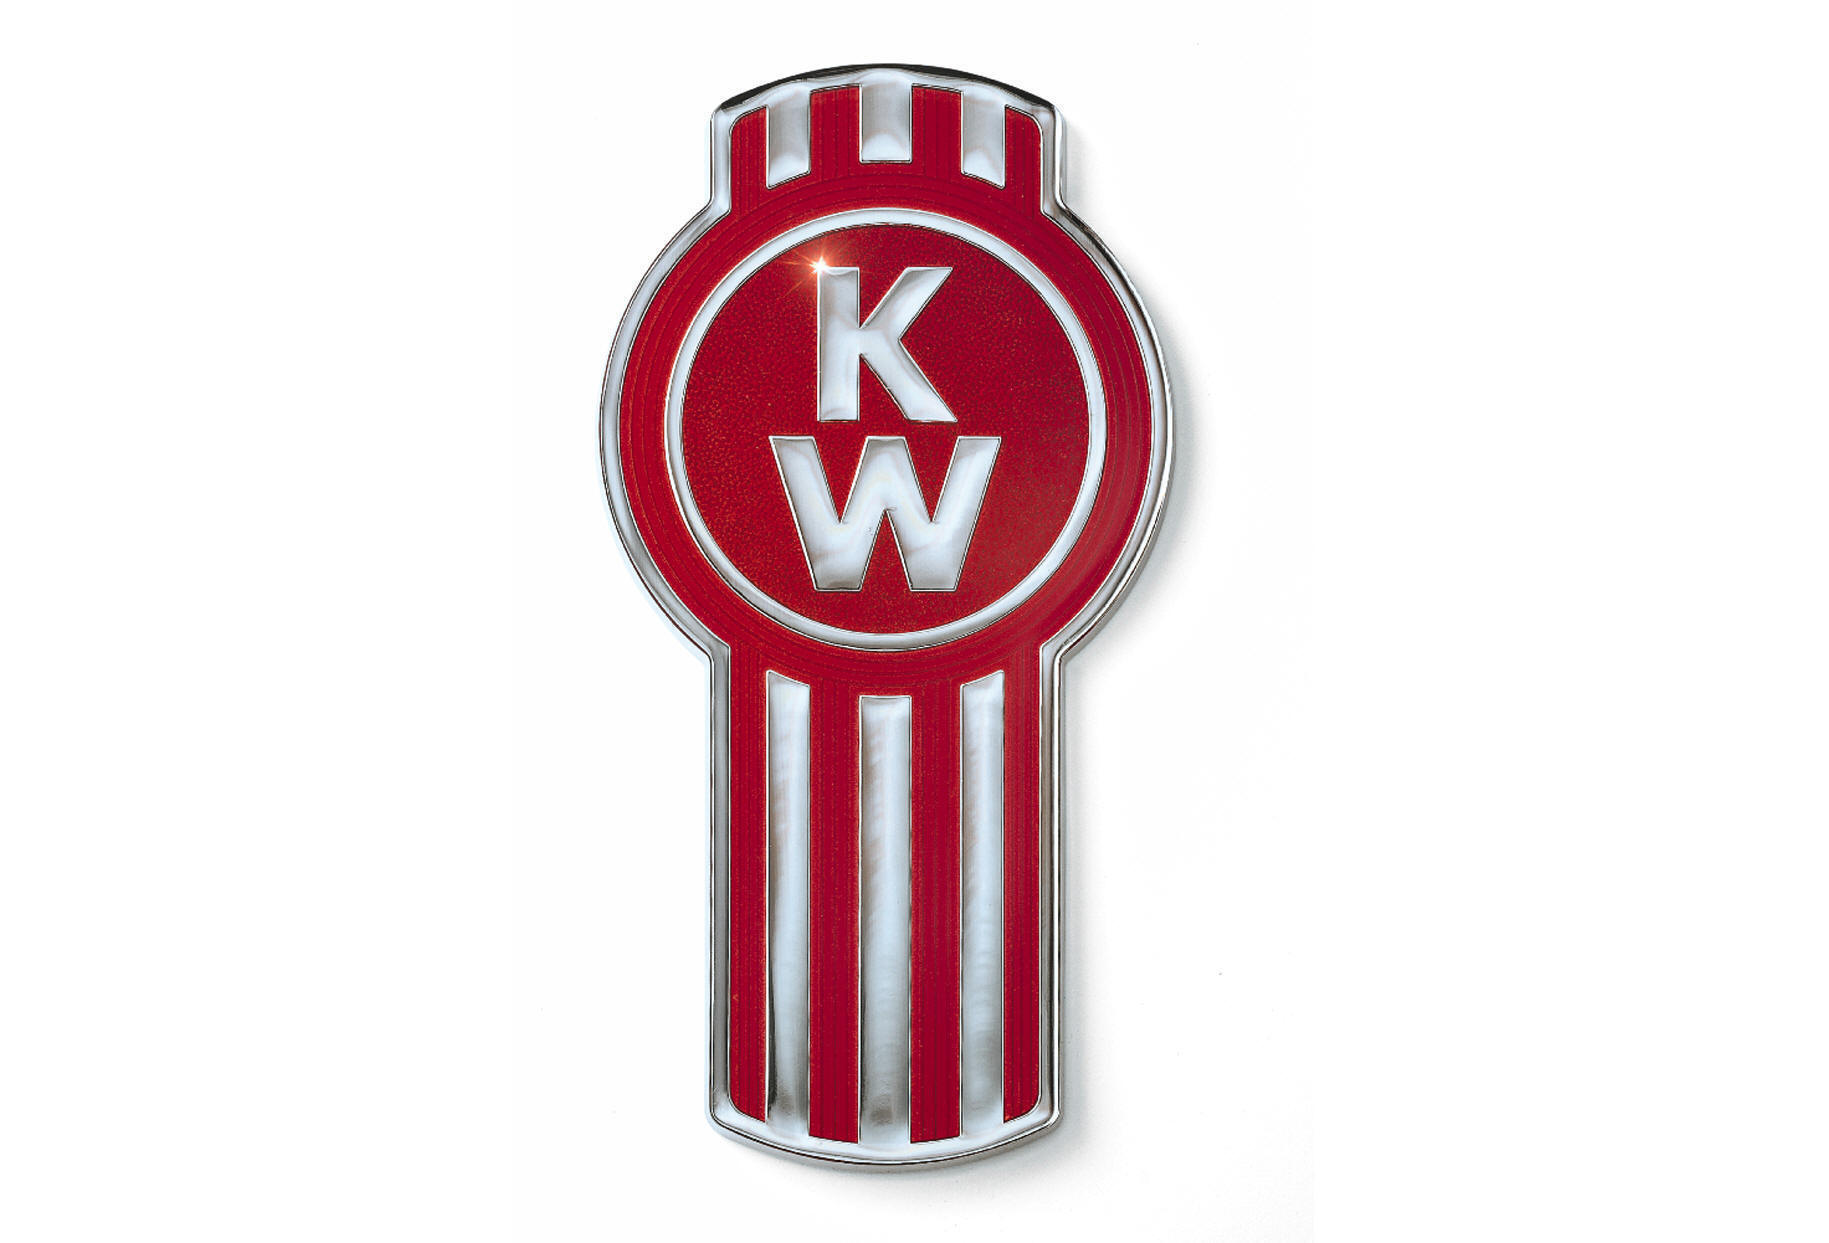 Kenworth Logo Wallpaper